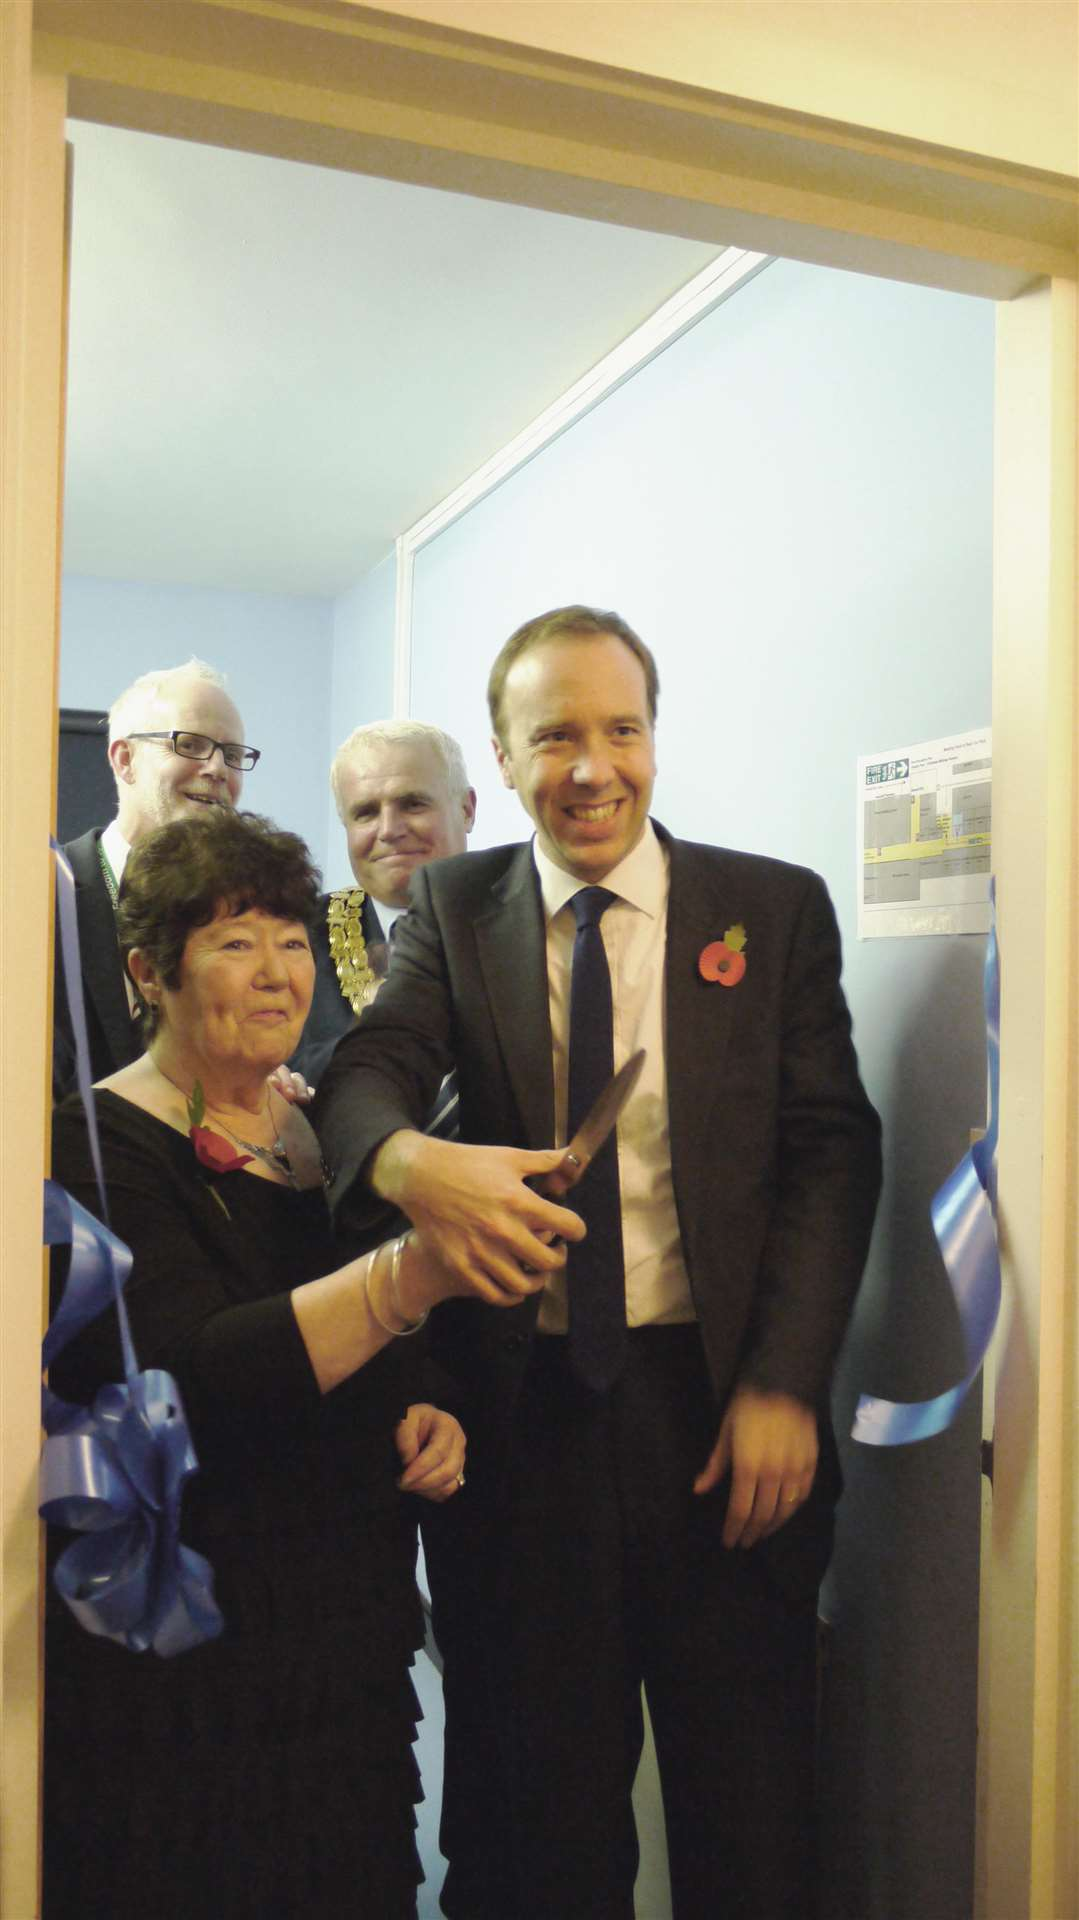 Betty McLatchy and Matt Hancock MP cut the ribbon to declare the new ultrasound open in Haverhill (5282472)